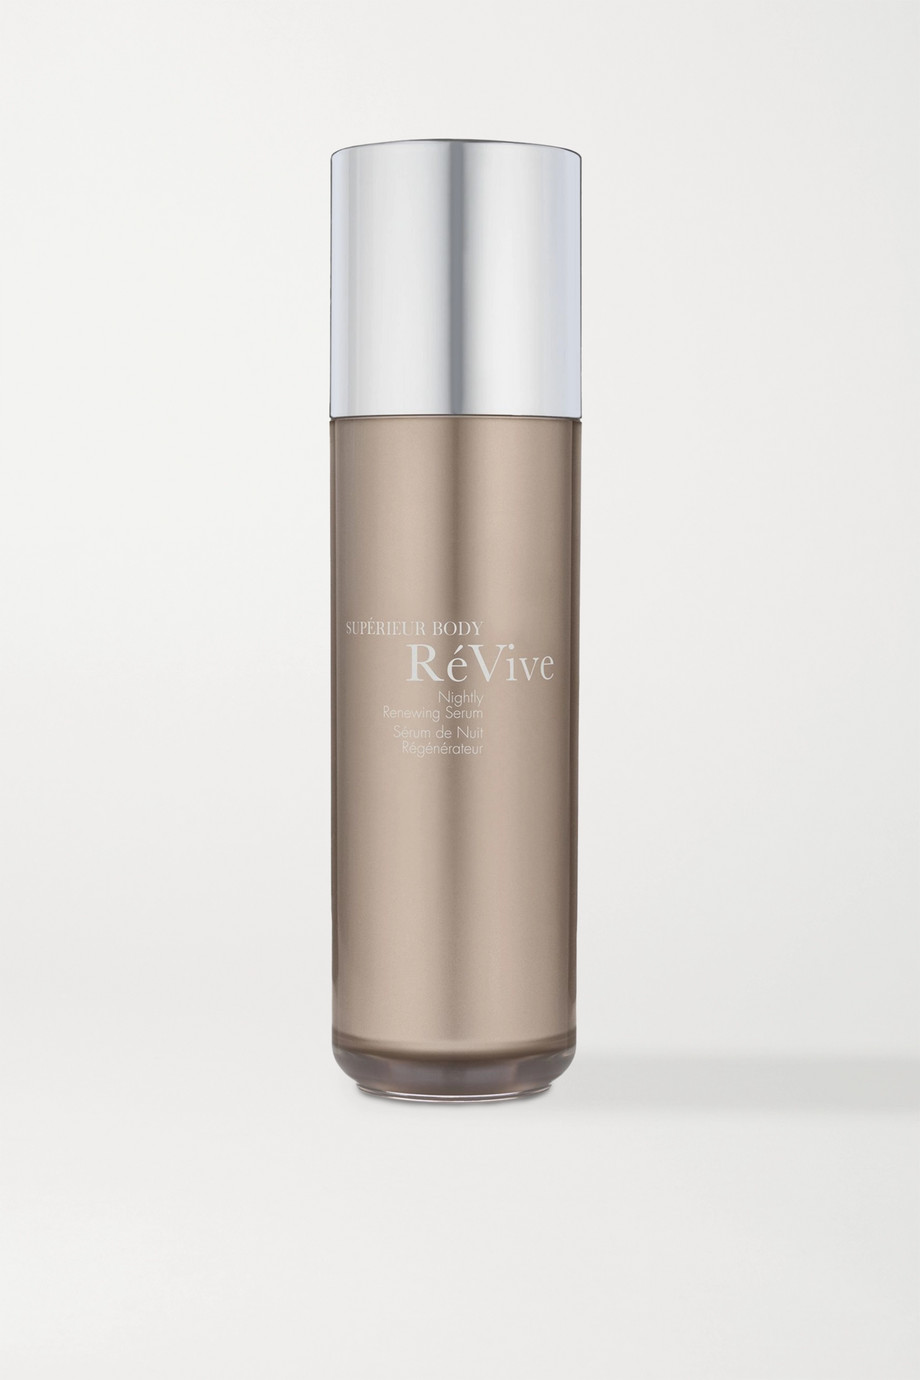 RéVive Supérieur Body Nightly Renewing Serum, 120ml